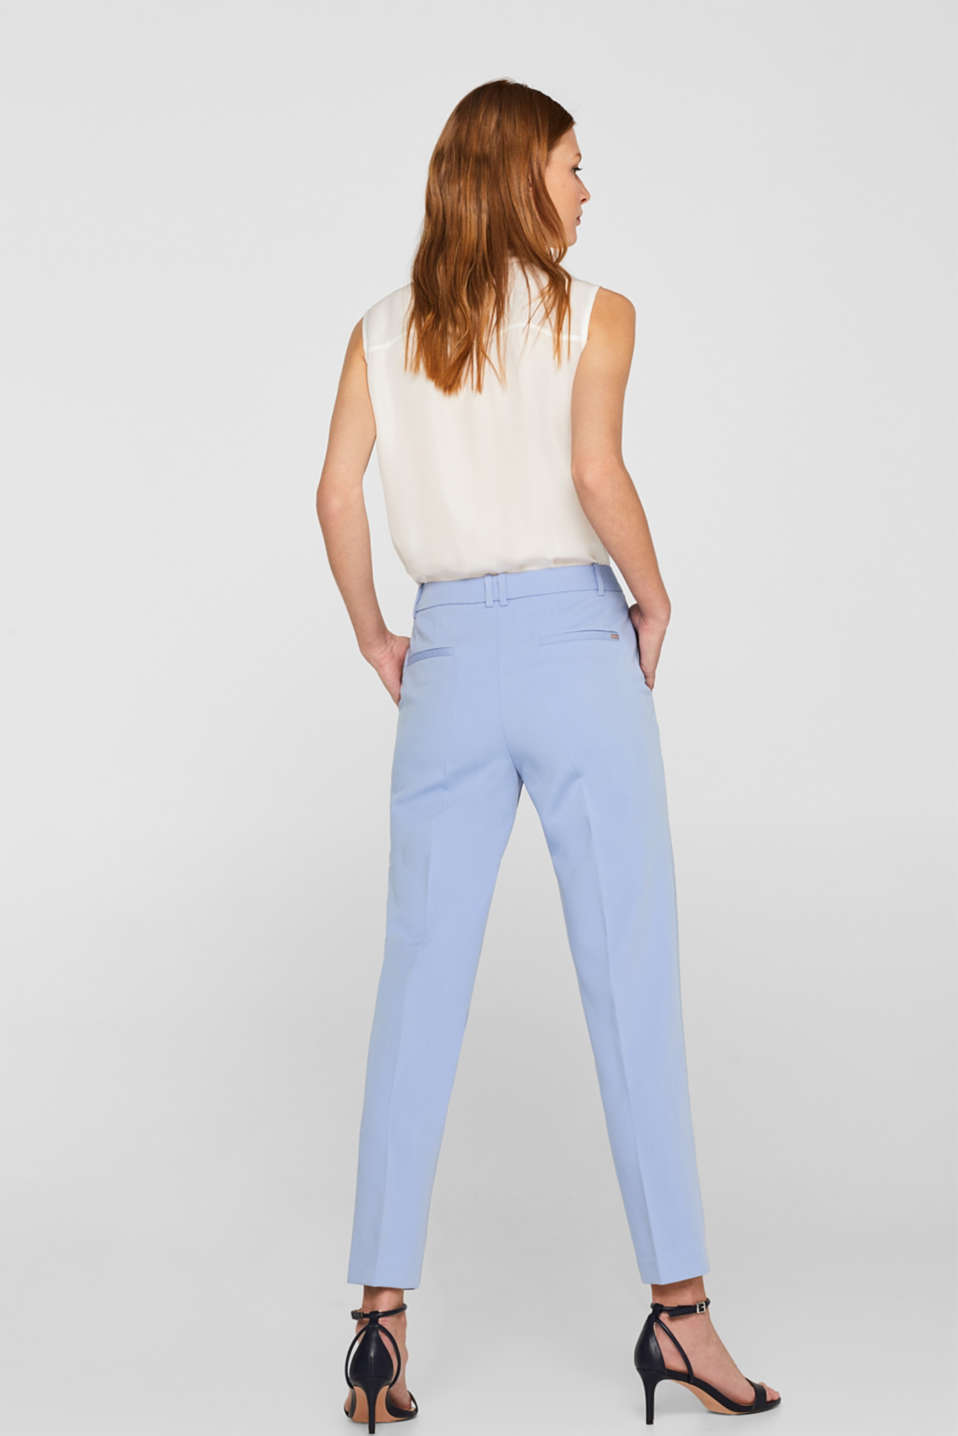 SPRING Mix + Match stretch trousers, LIGHT BLUE, detail image number 3